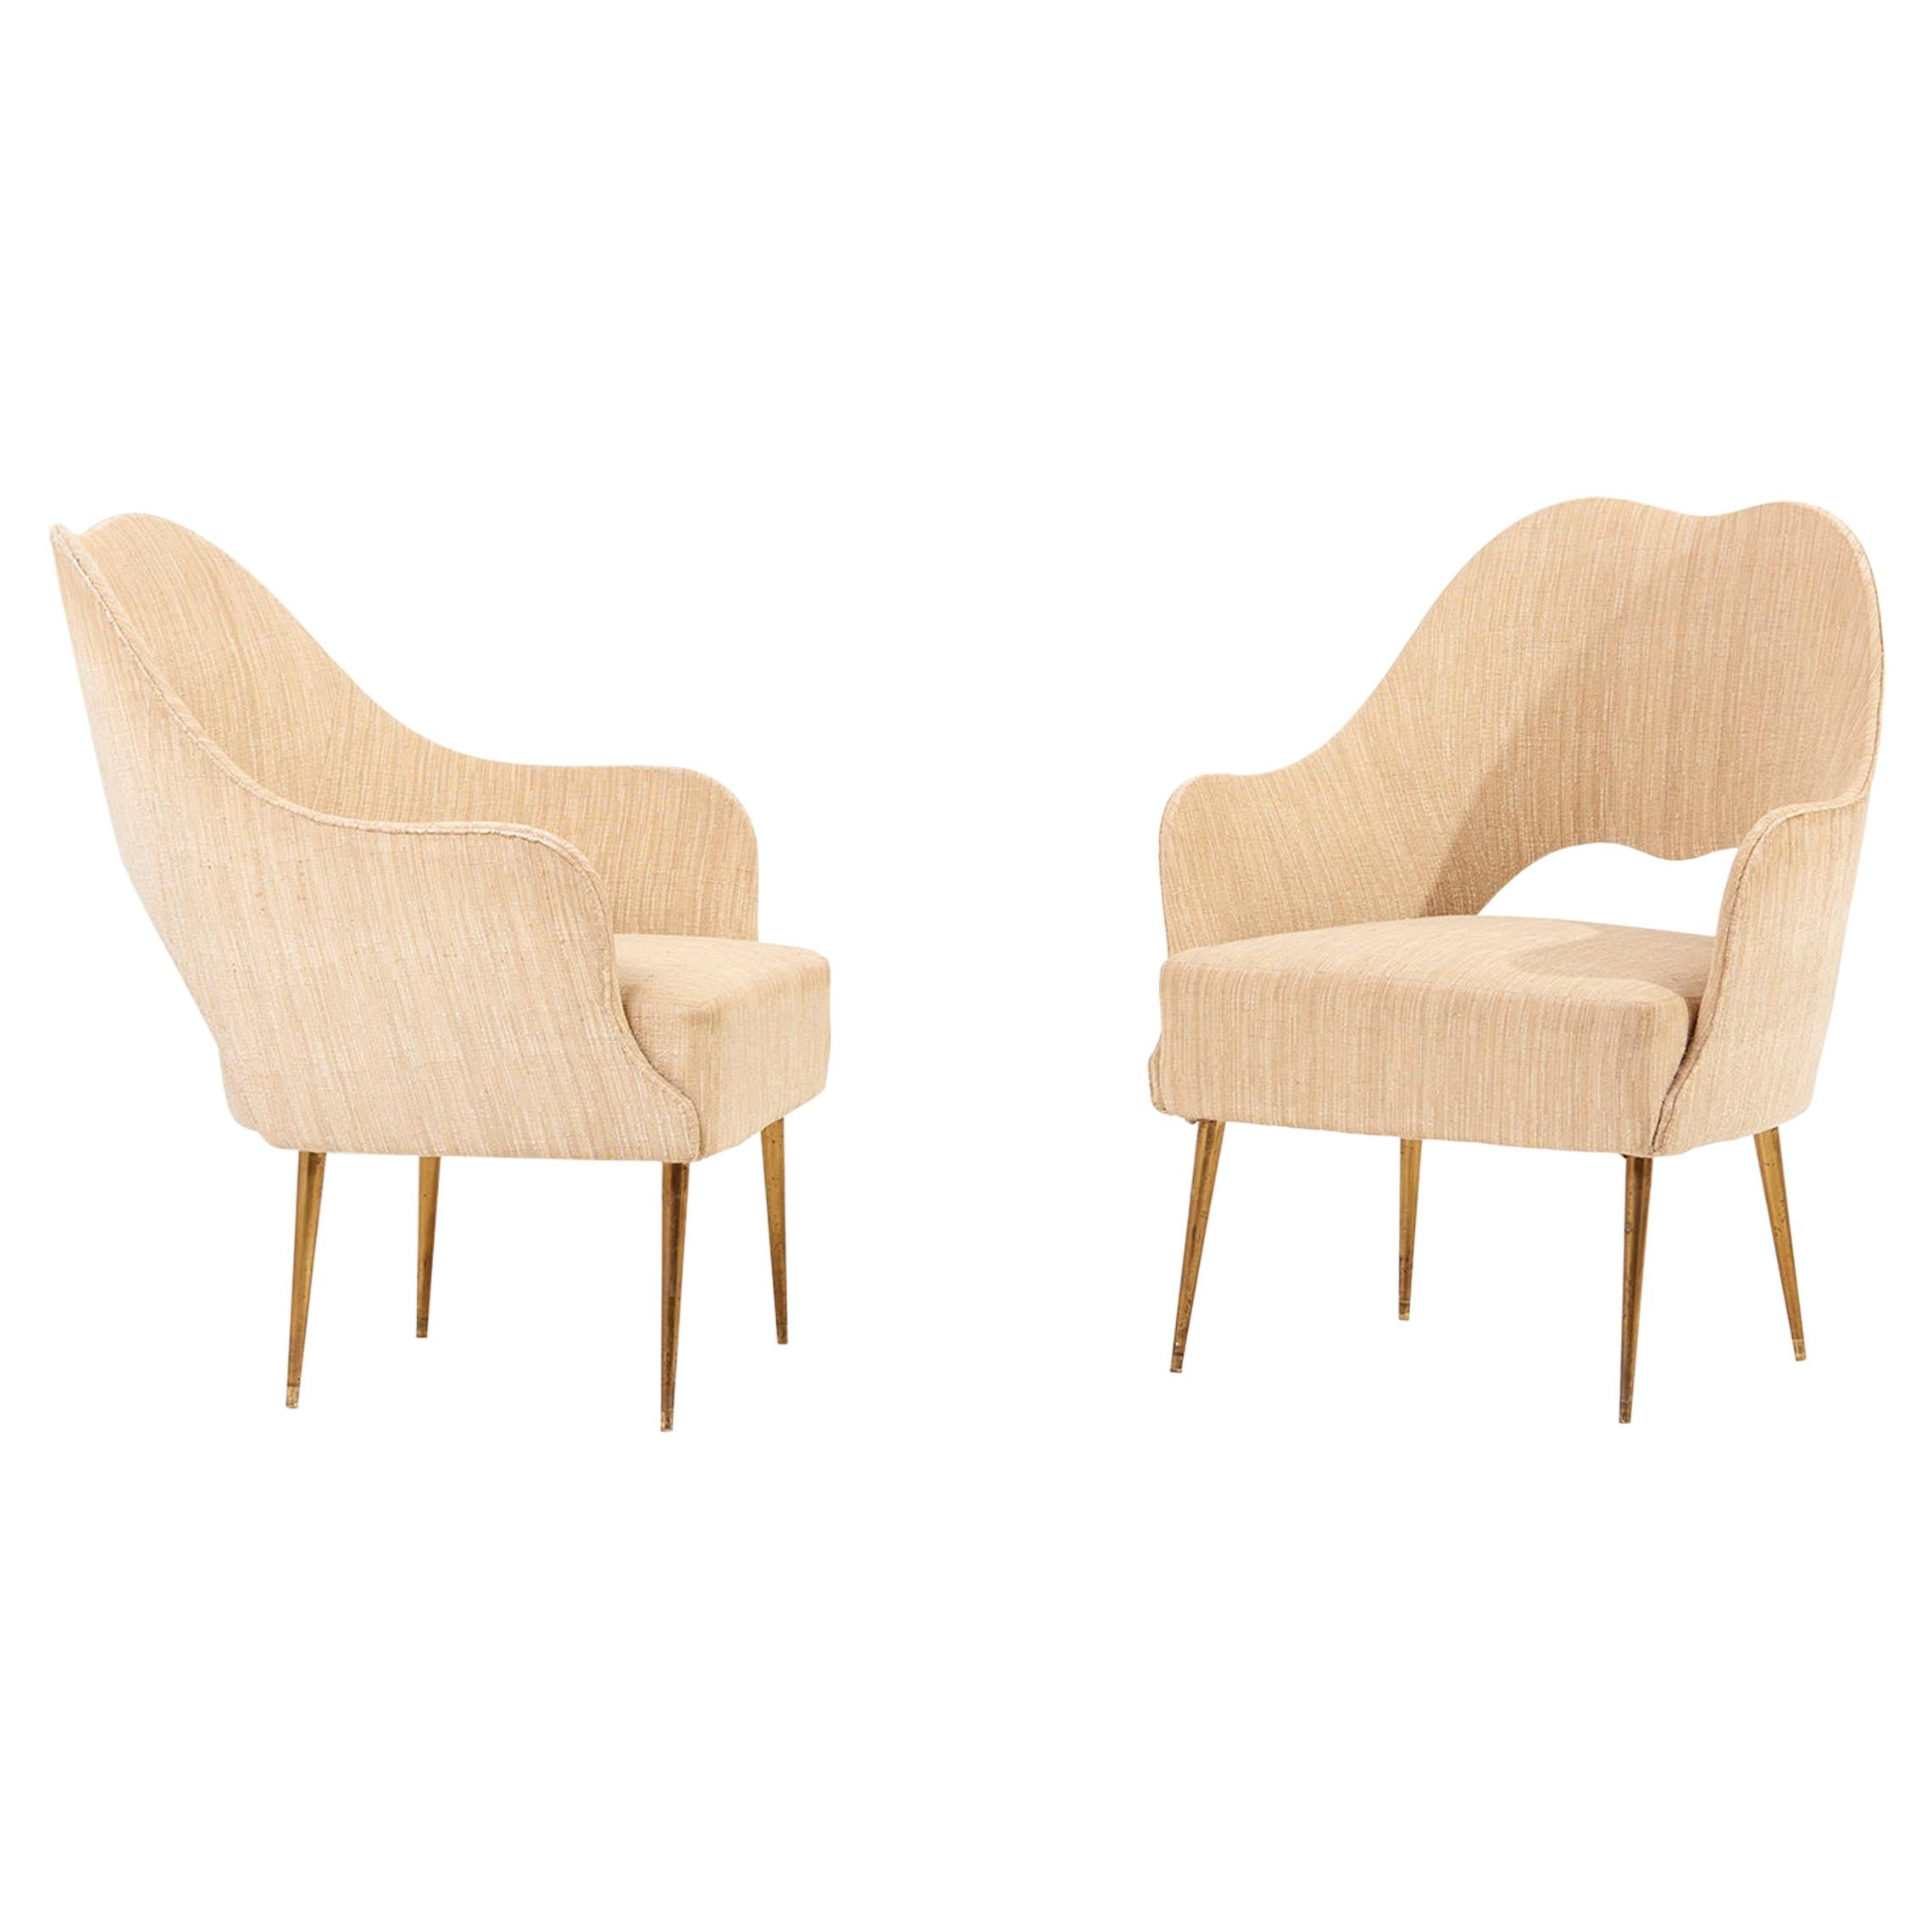 Pair of Lounge Chairs by ISA, Bergamo, Italy, 1950s